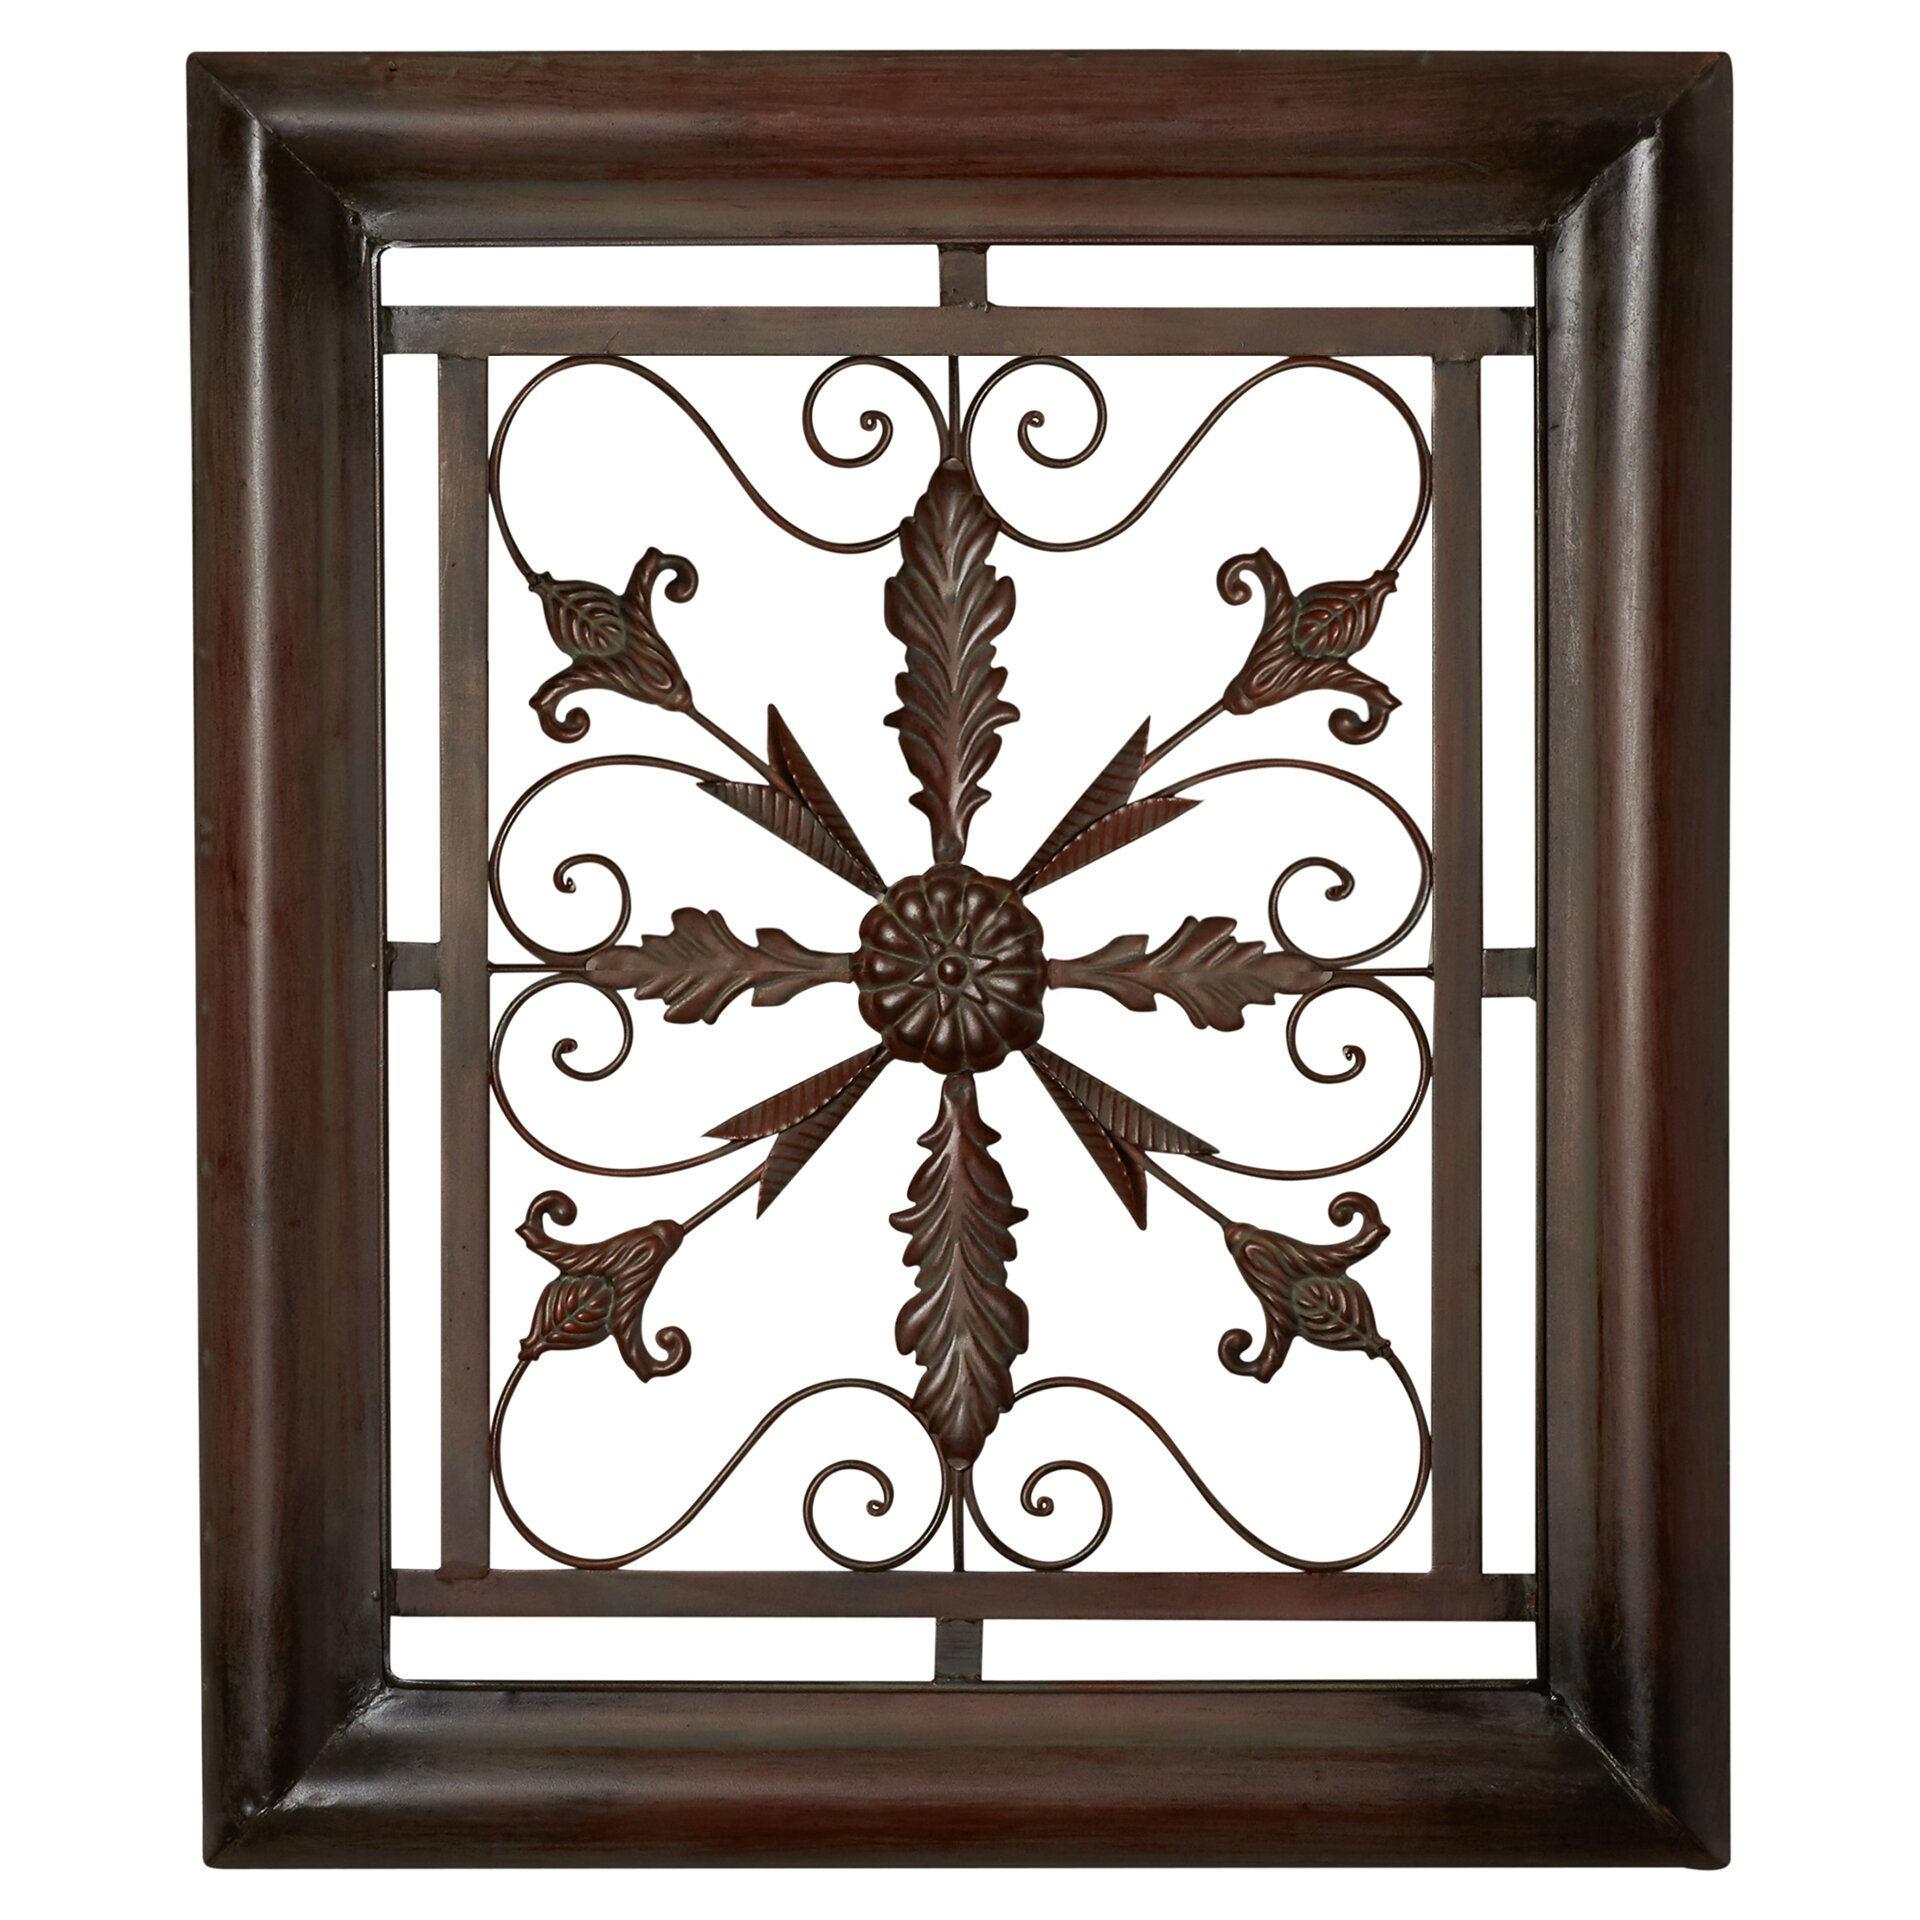 Square Metal Wall Decor Charlton Home Bayliss Square Scroll Wall Decor Reviews Wayfair